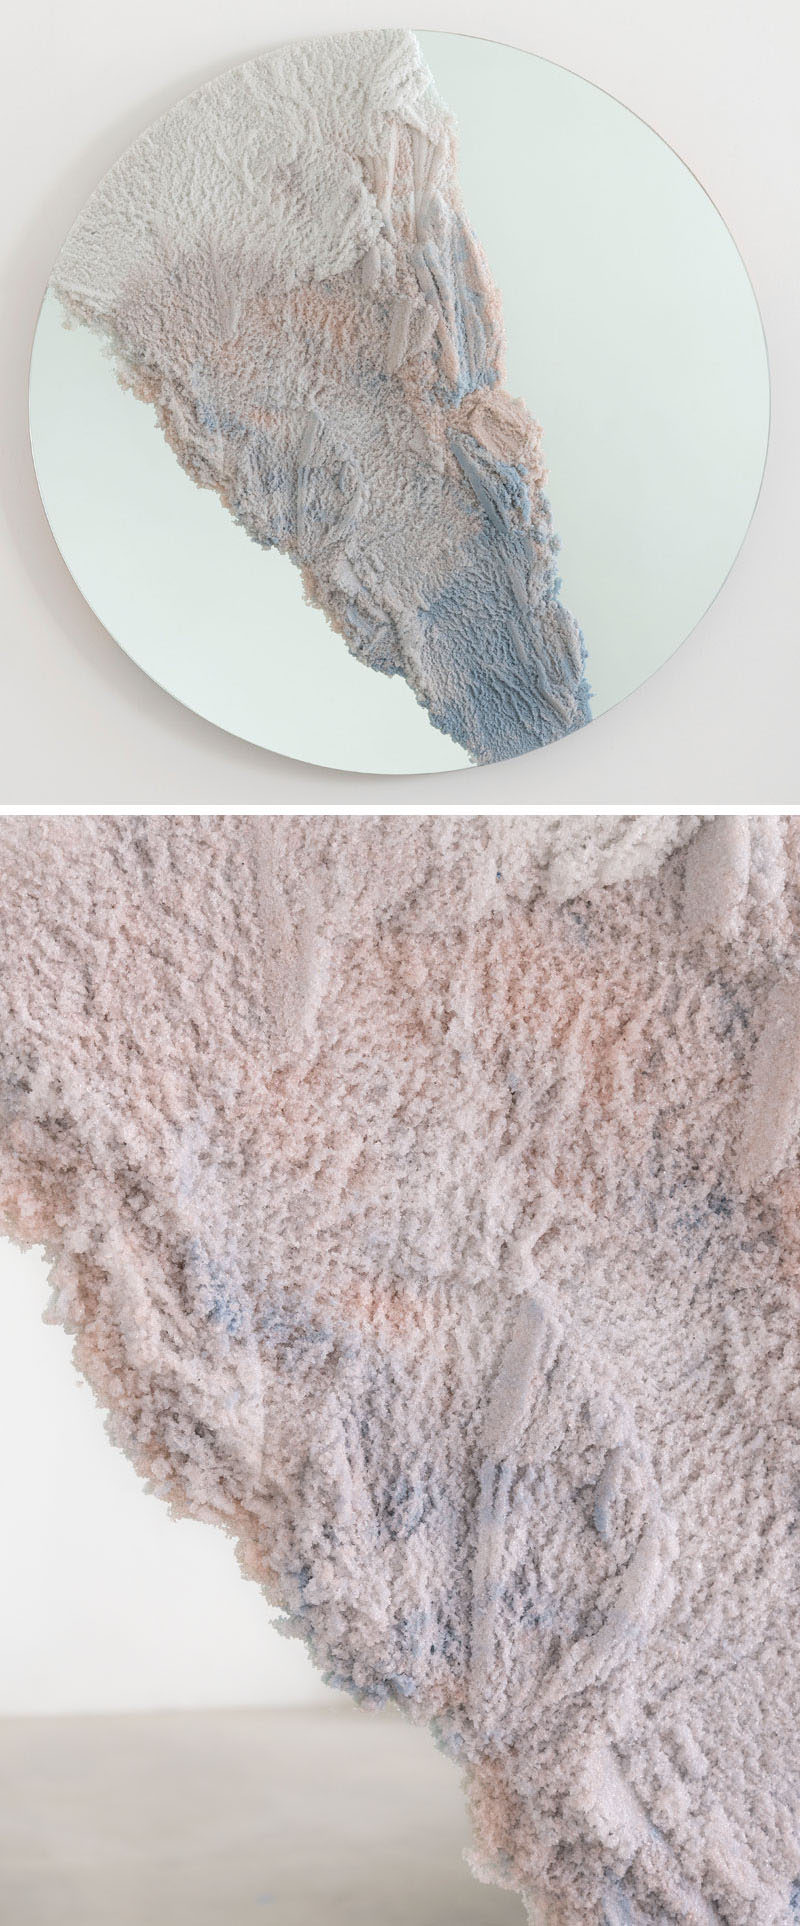 Designer Fernando Mastrangelo has created the Escape Collection, a group of modern furniture pieces, like this mirror, that are made using hand-dyed sand and silica to create simple forms that look like a three-dimensional landscape painting.